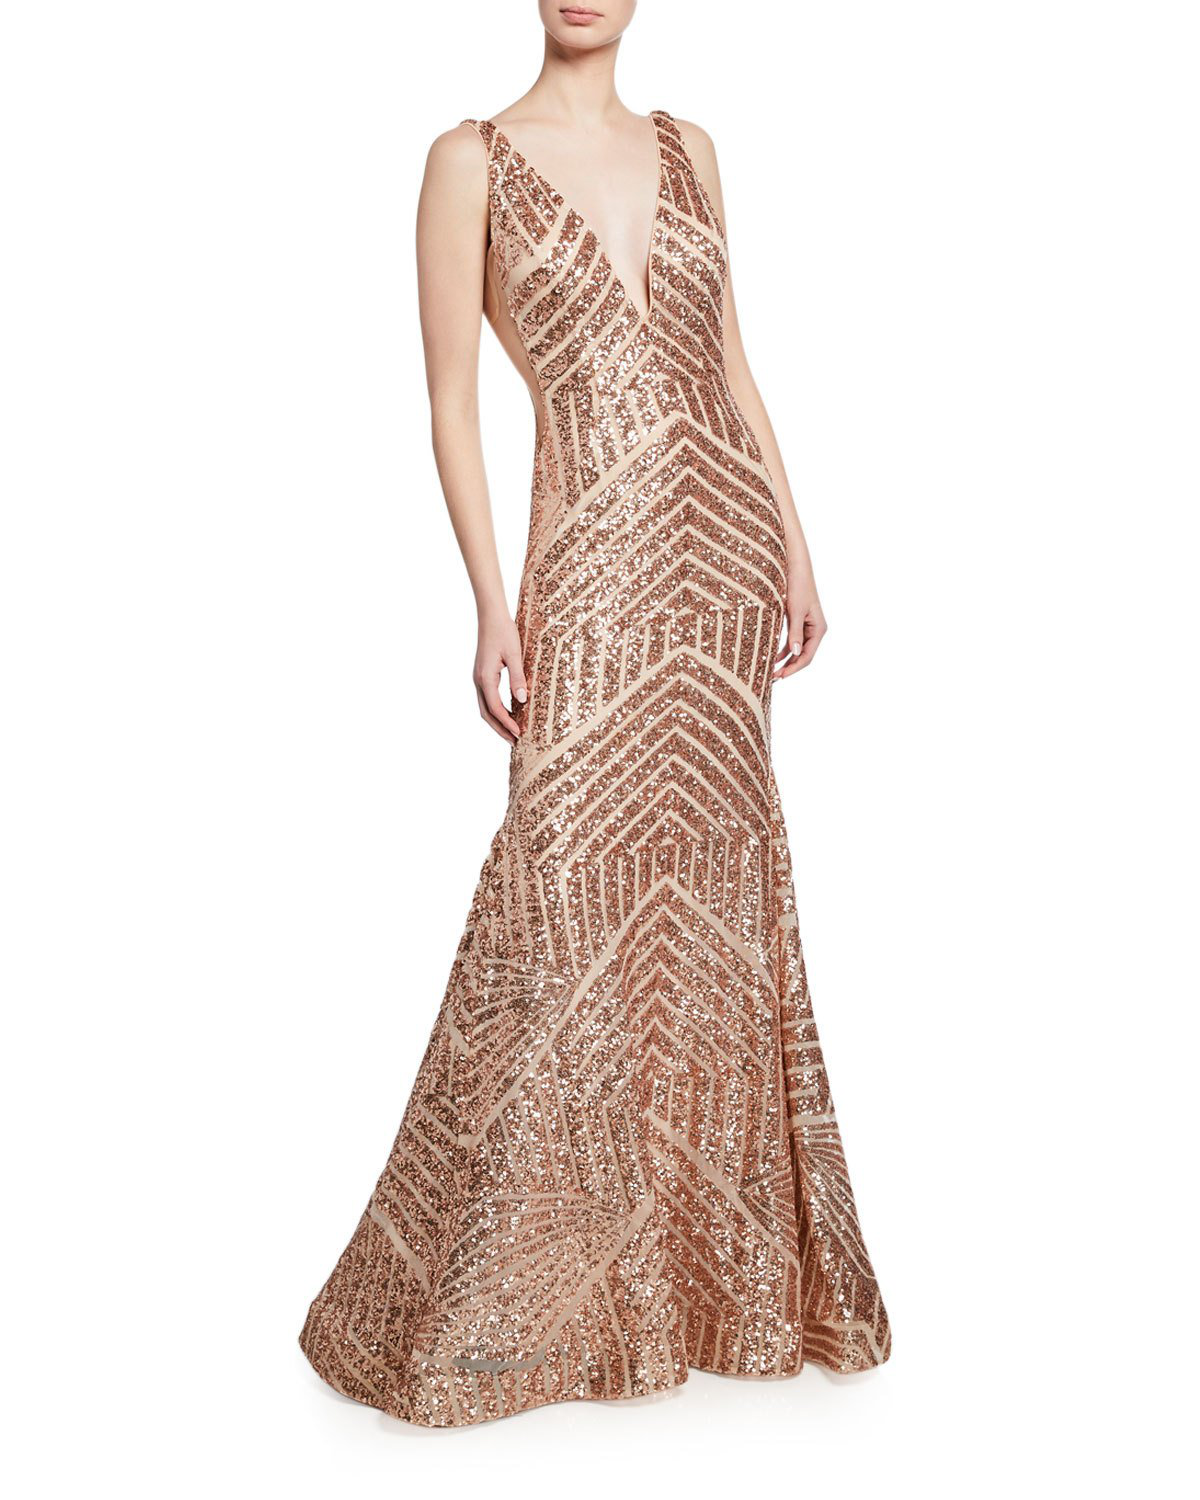 7f6c5ebdfdb0 Jovani Sequin Geometric Deep V-Neck Sleeveless Mermaid Gown In Pink/Gold